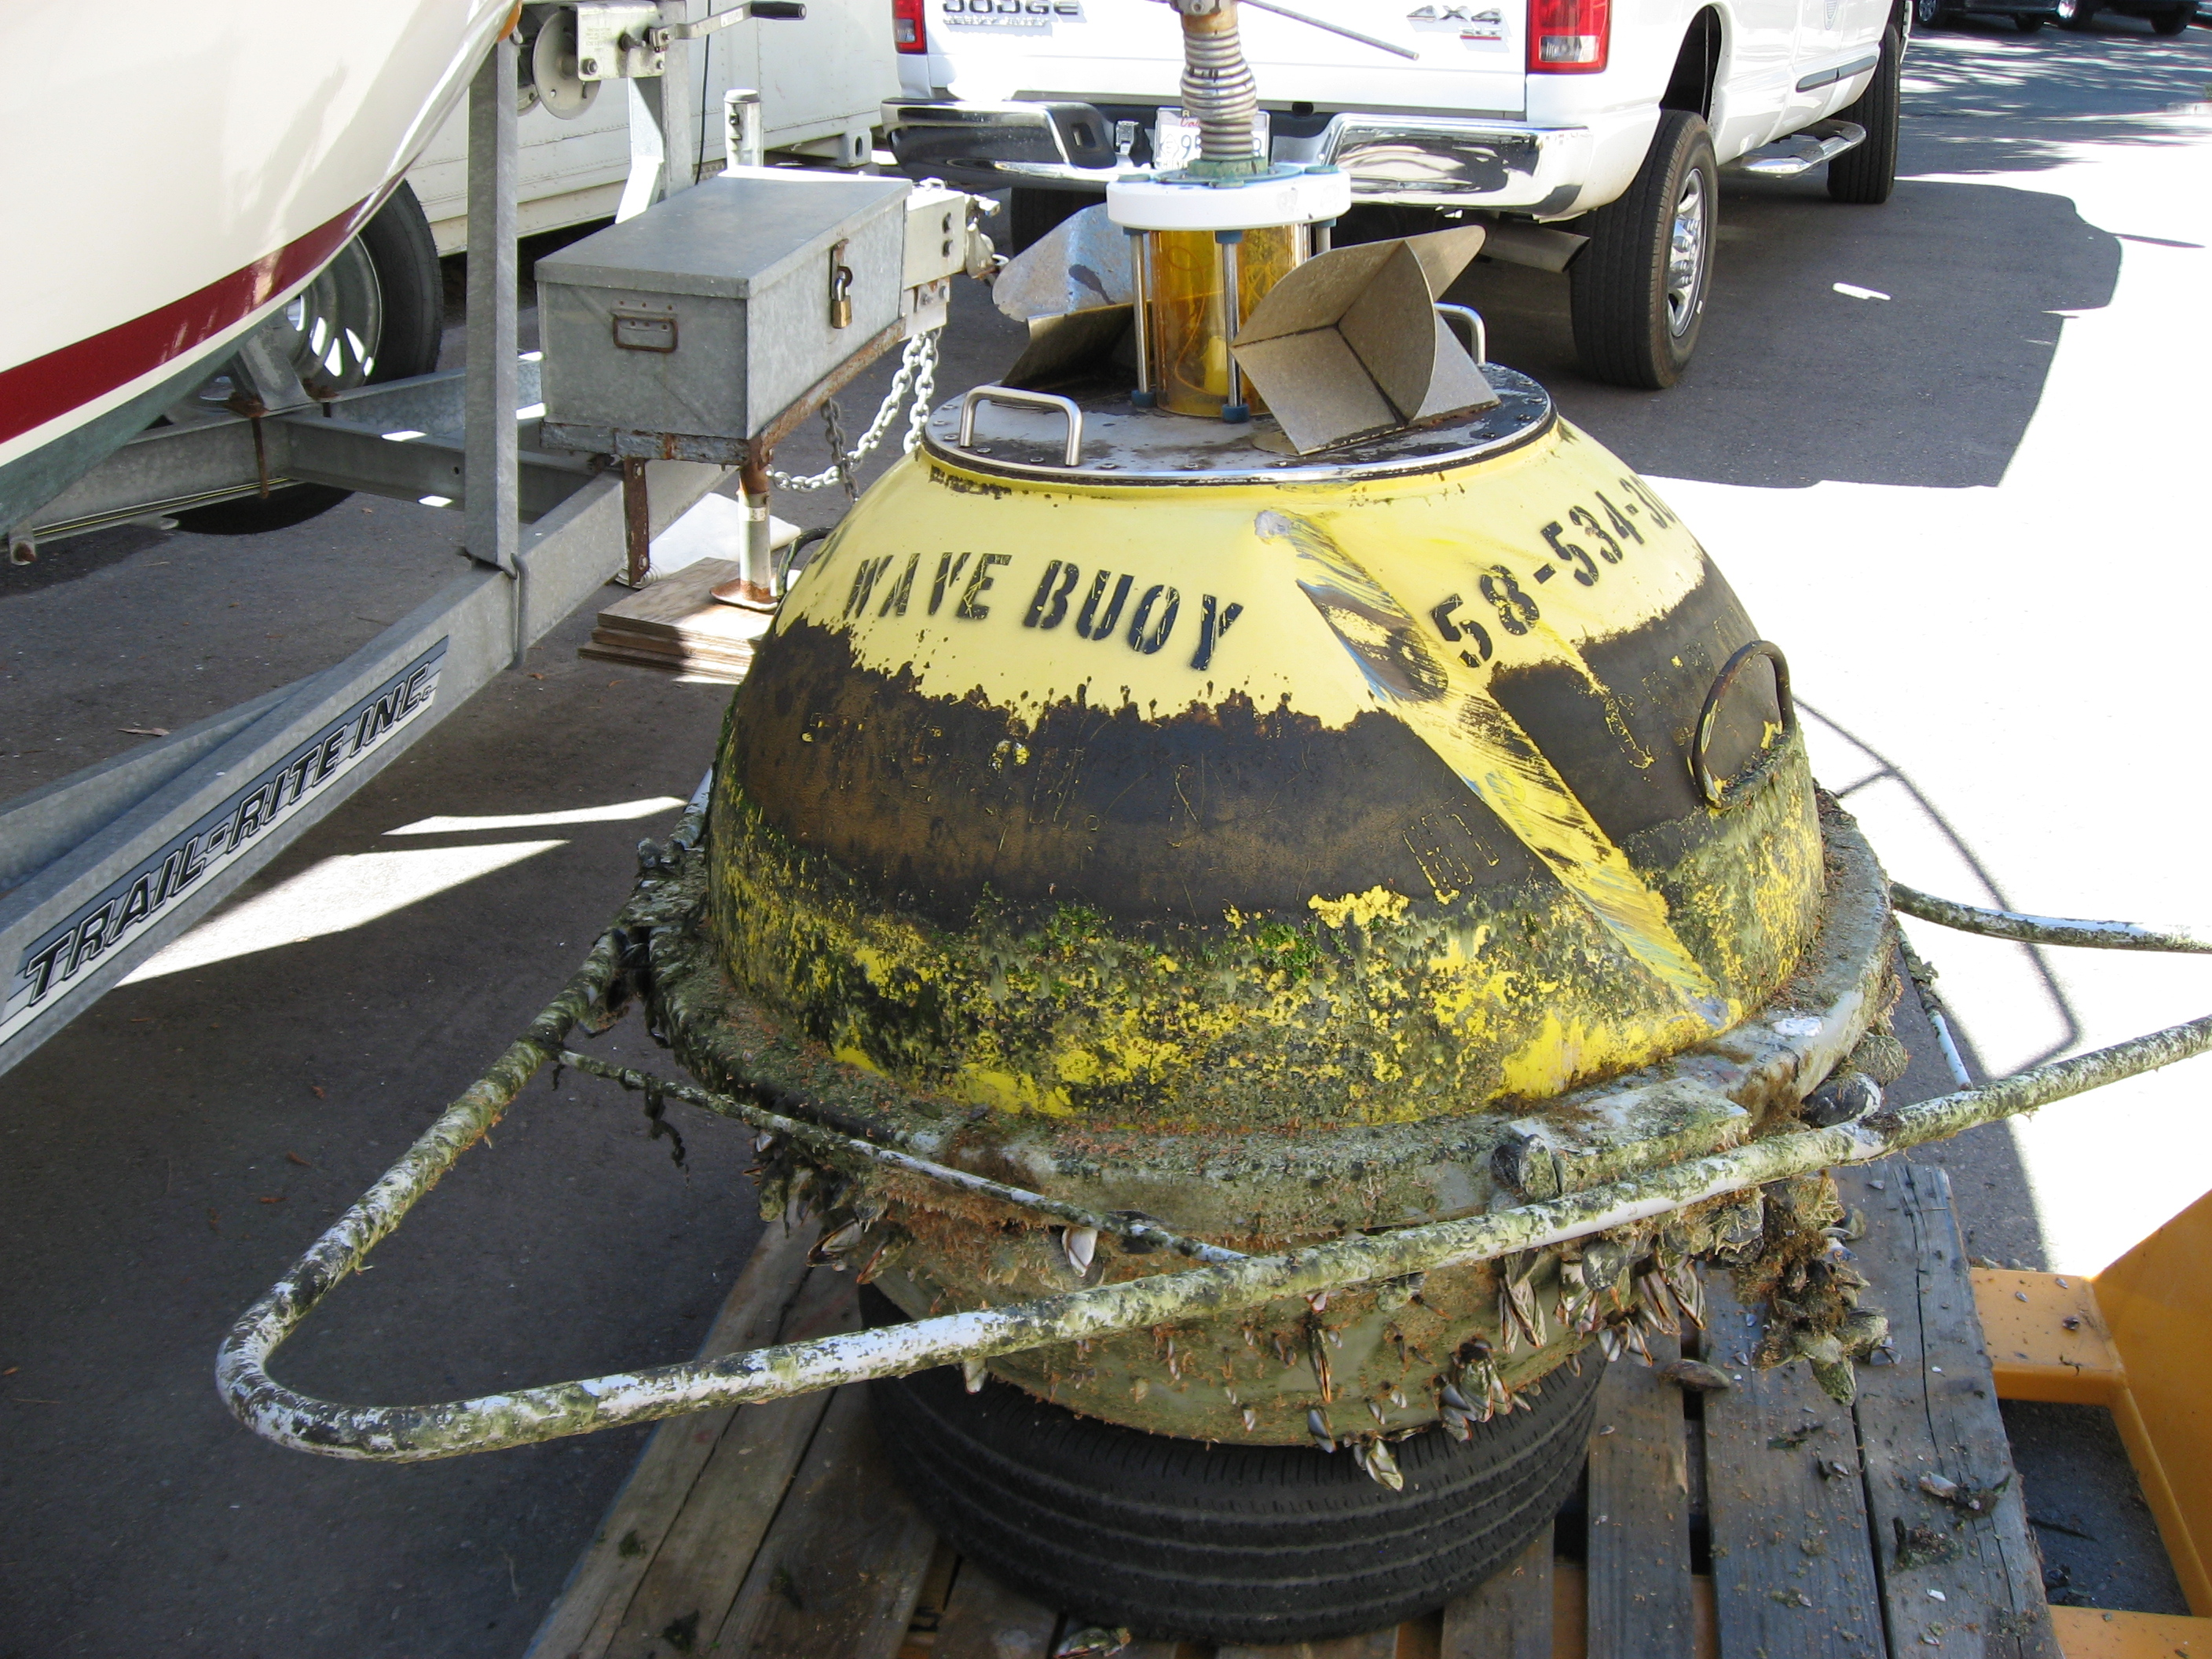 Damage to buoy after collision